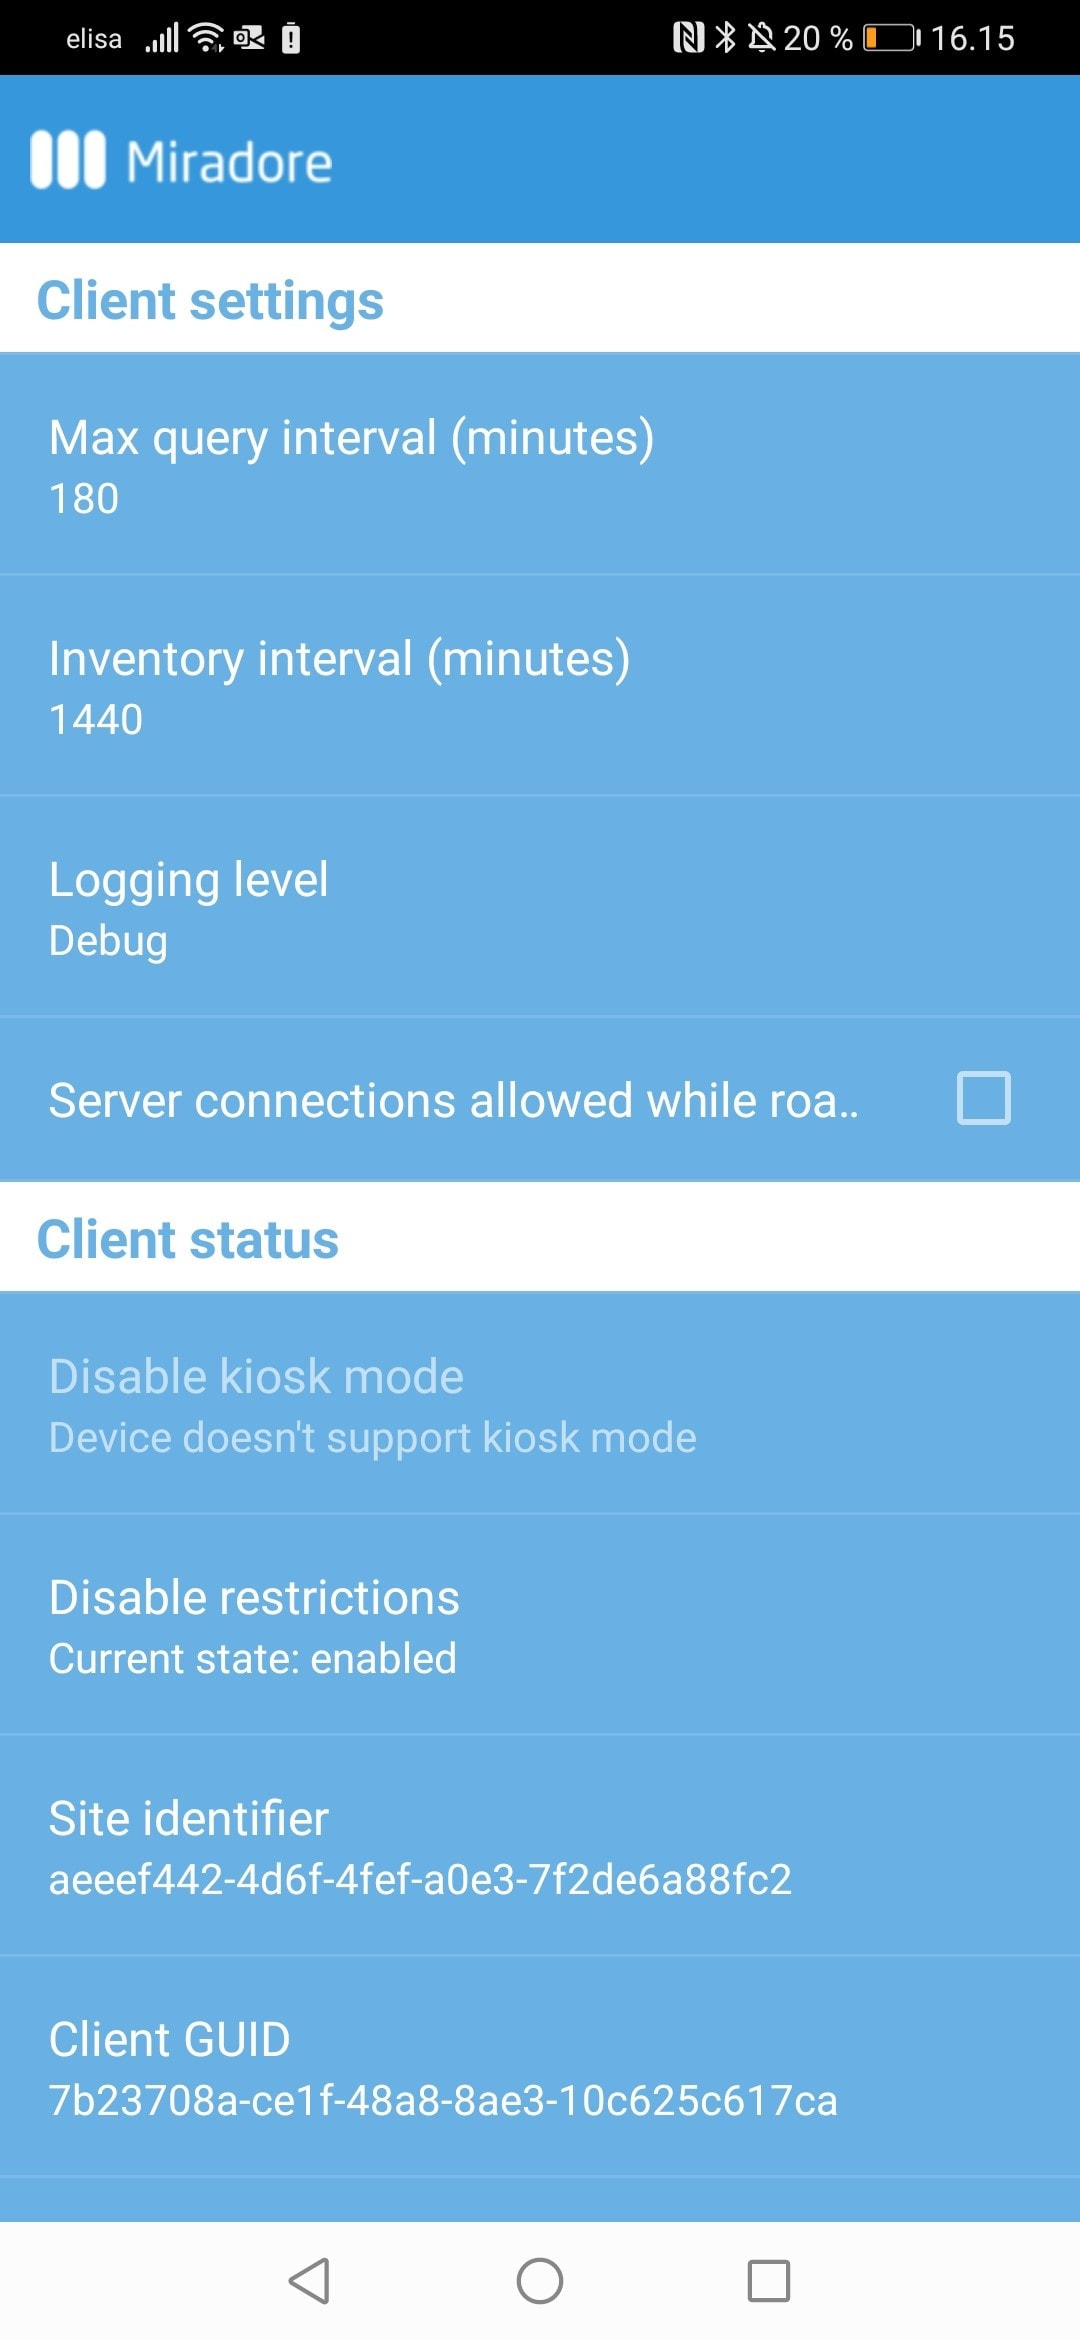 Miradore Client for Android